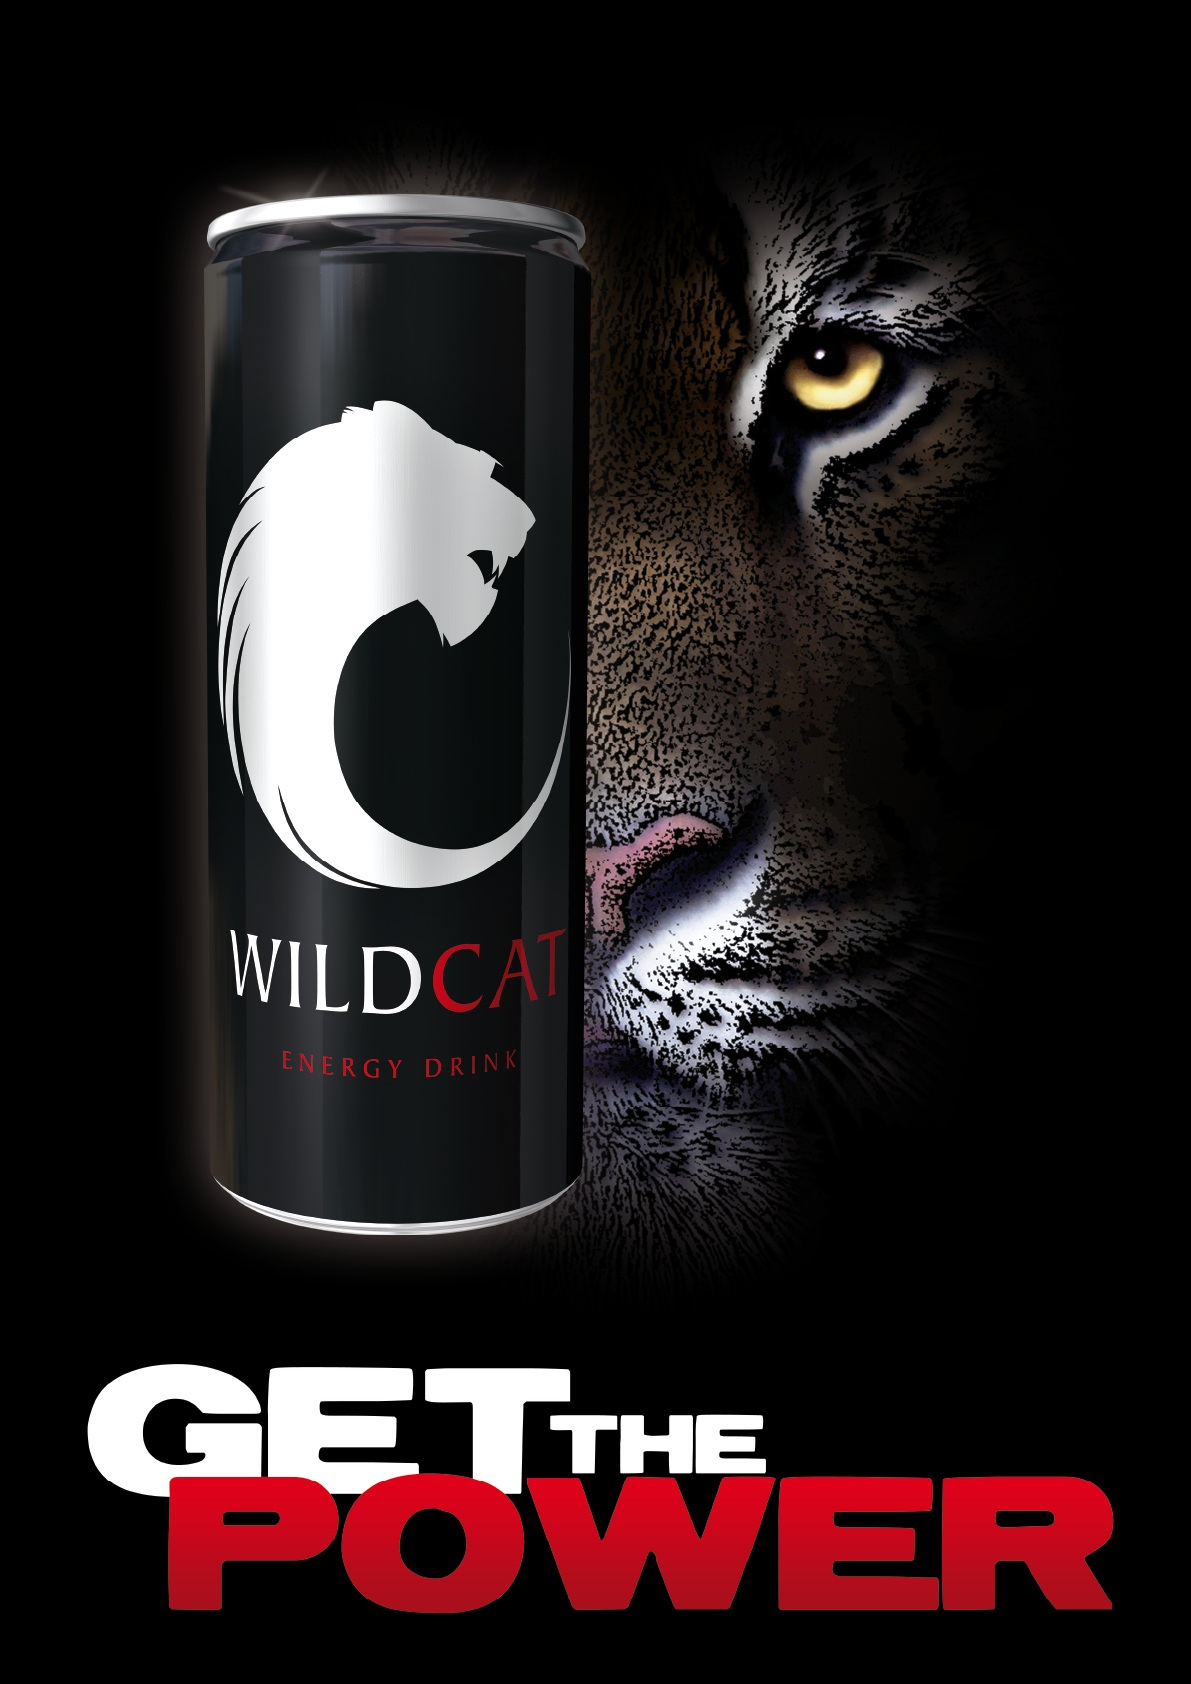 Wildcat energy drink made or the best friends